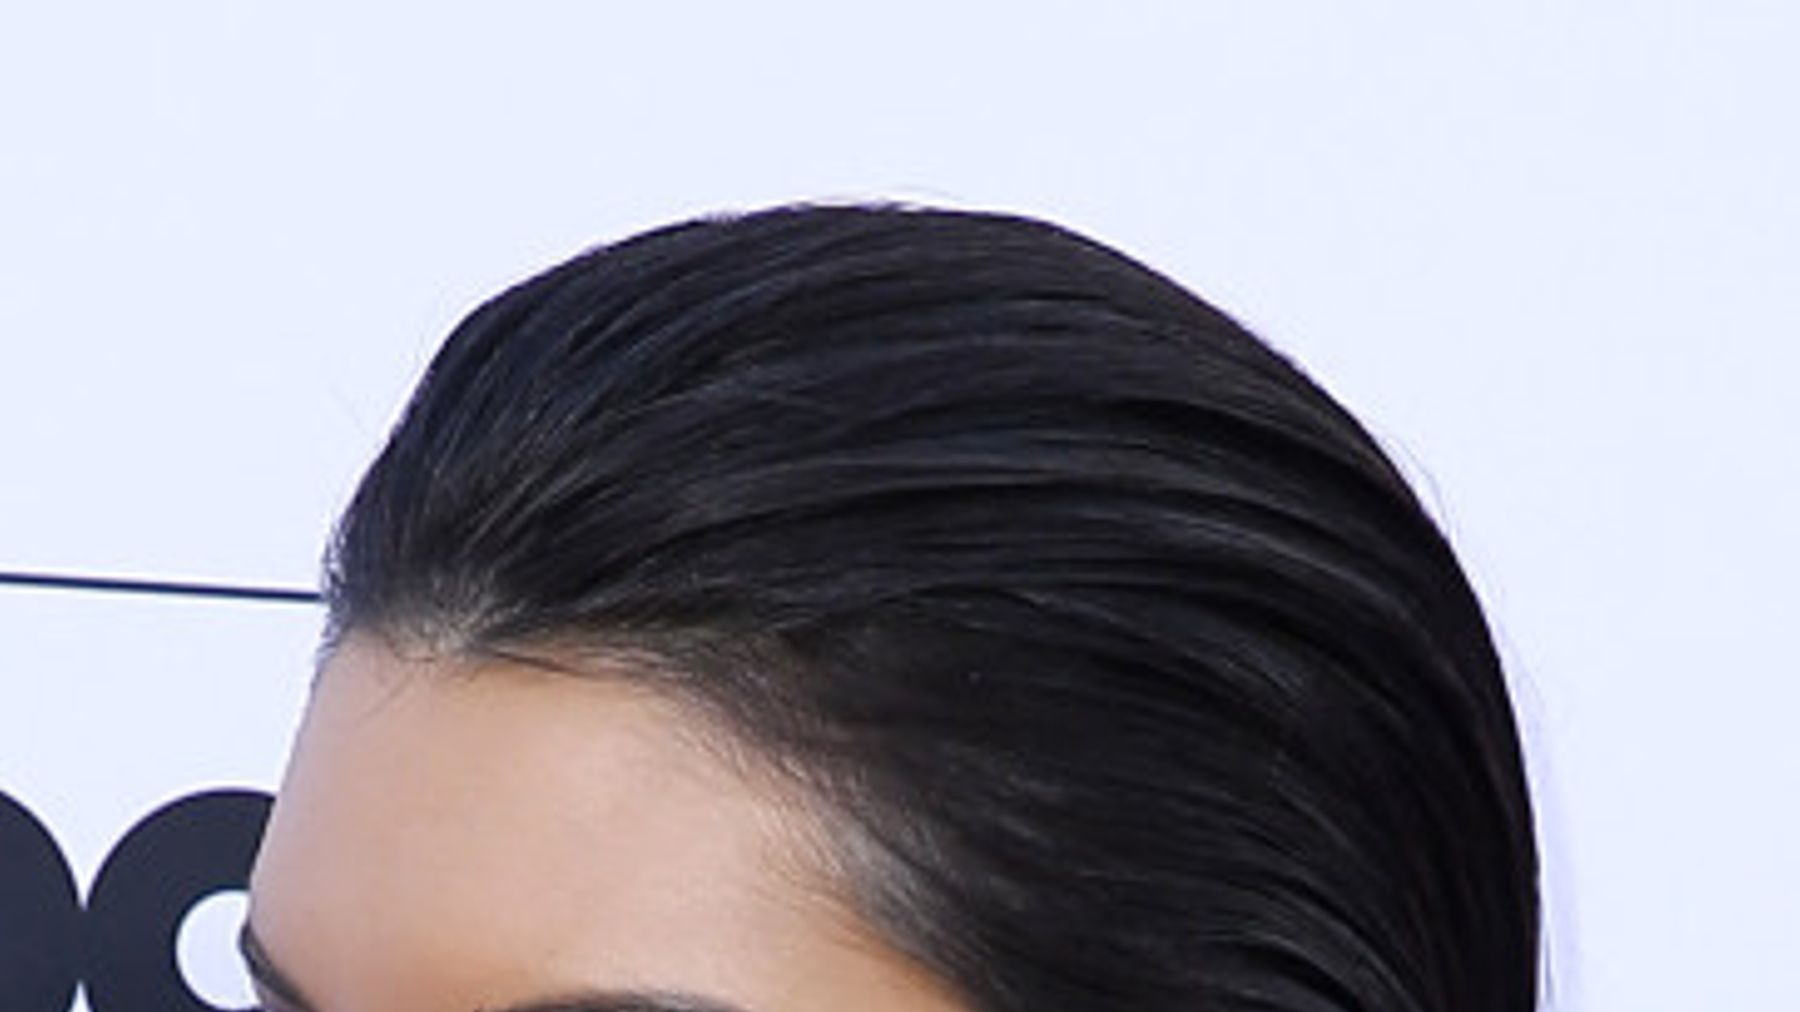 Get Kendall Jenner's swept back hair style at home with our